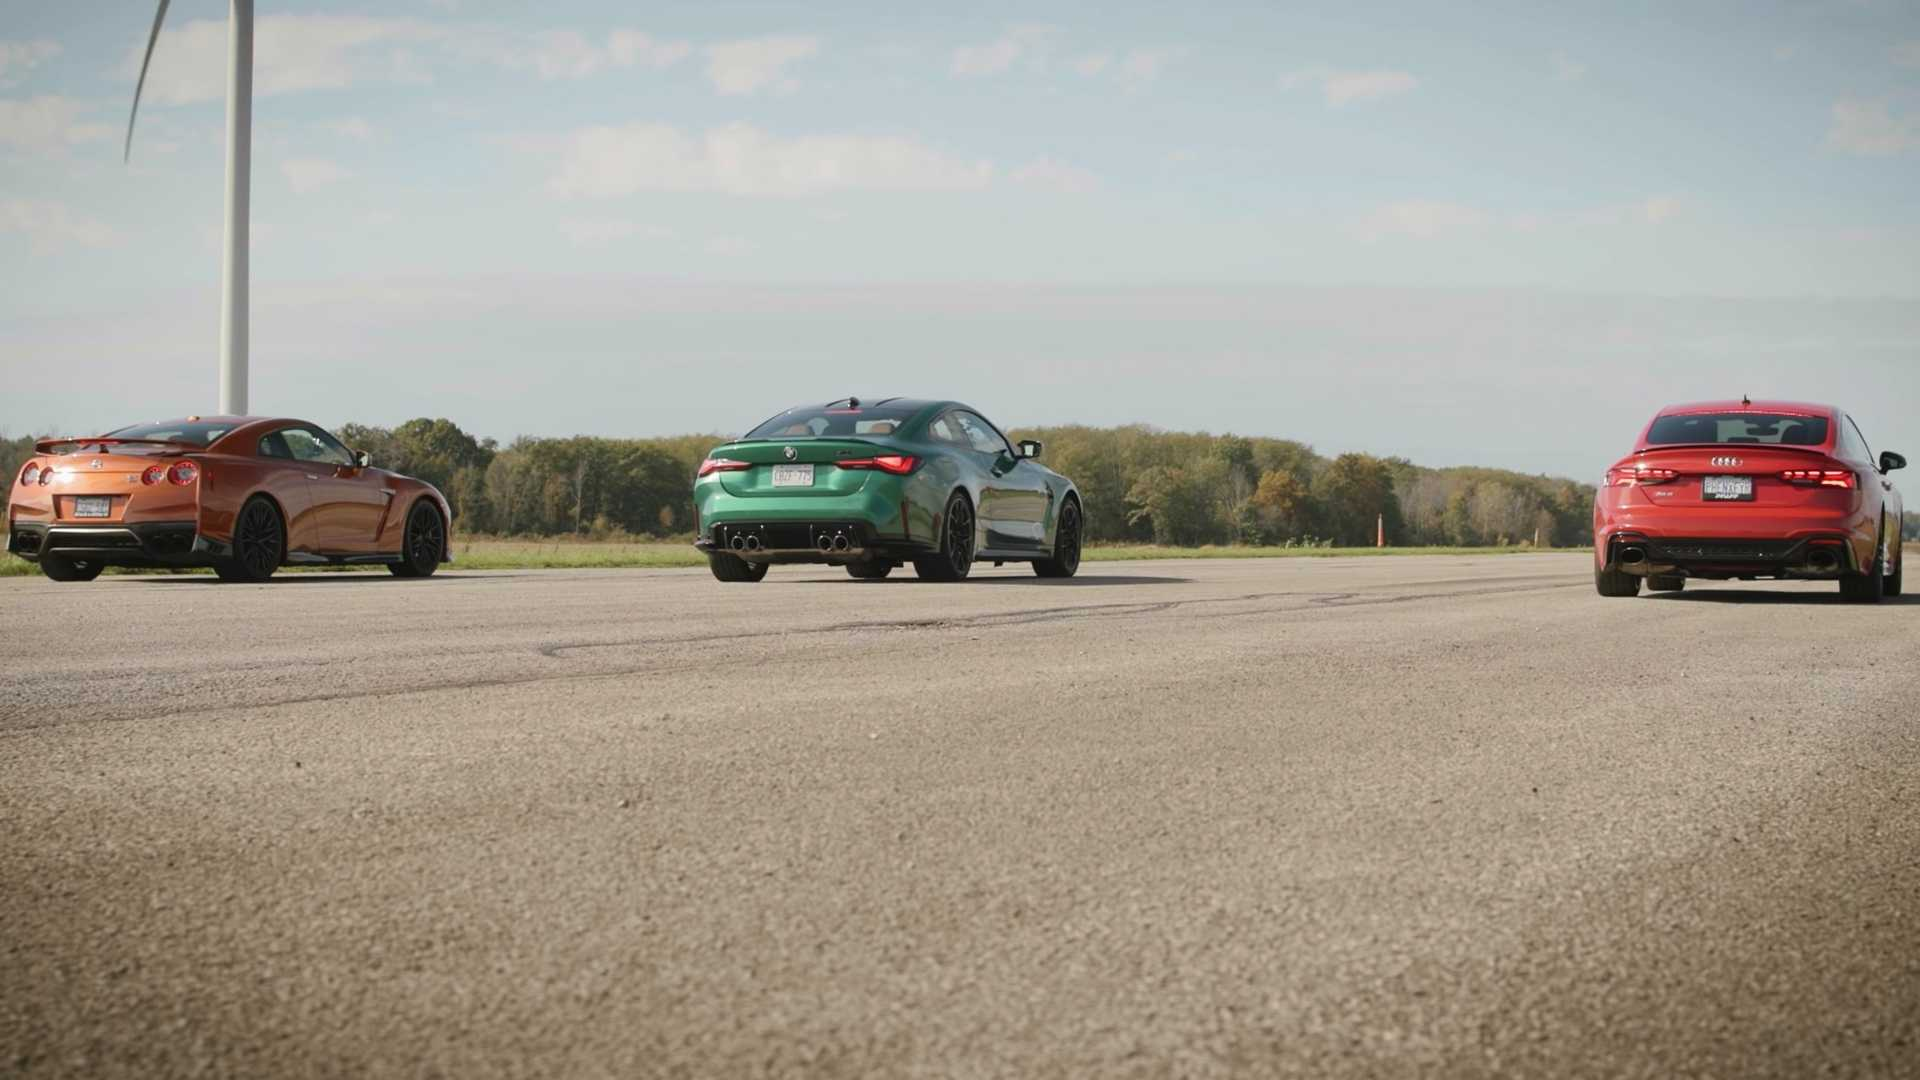 Nissan GT-R fights Audi RS5 and BMW M4 xDrive in drag race